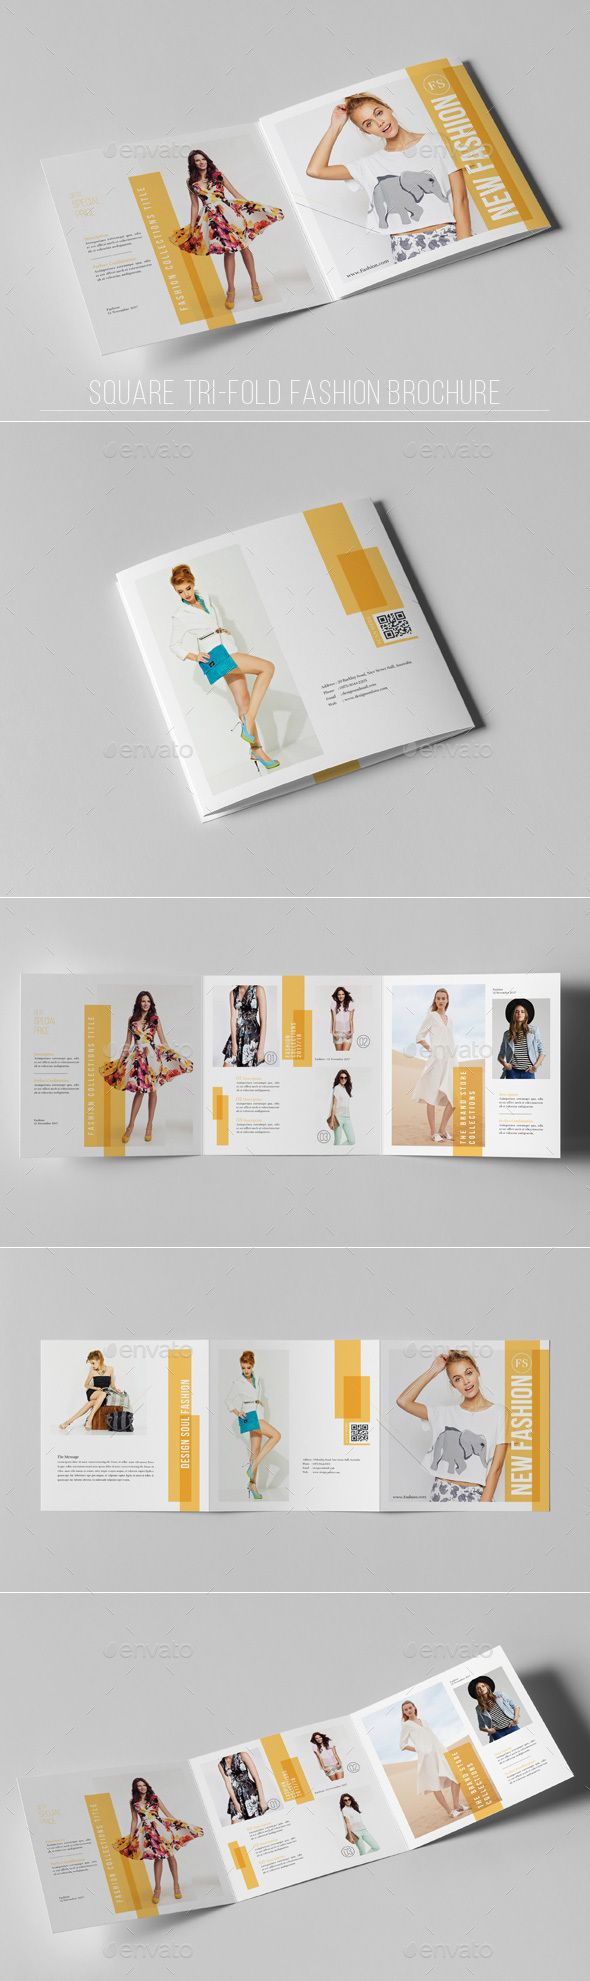 Square TriFold Fashion Brochure — Photoshop PSD #fresh design #clean square brochure • Download ➝ https://graphicriver.net/item/square-trifold-fashion-brochure/19291857?ref=pxcr